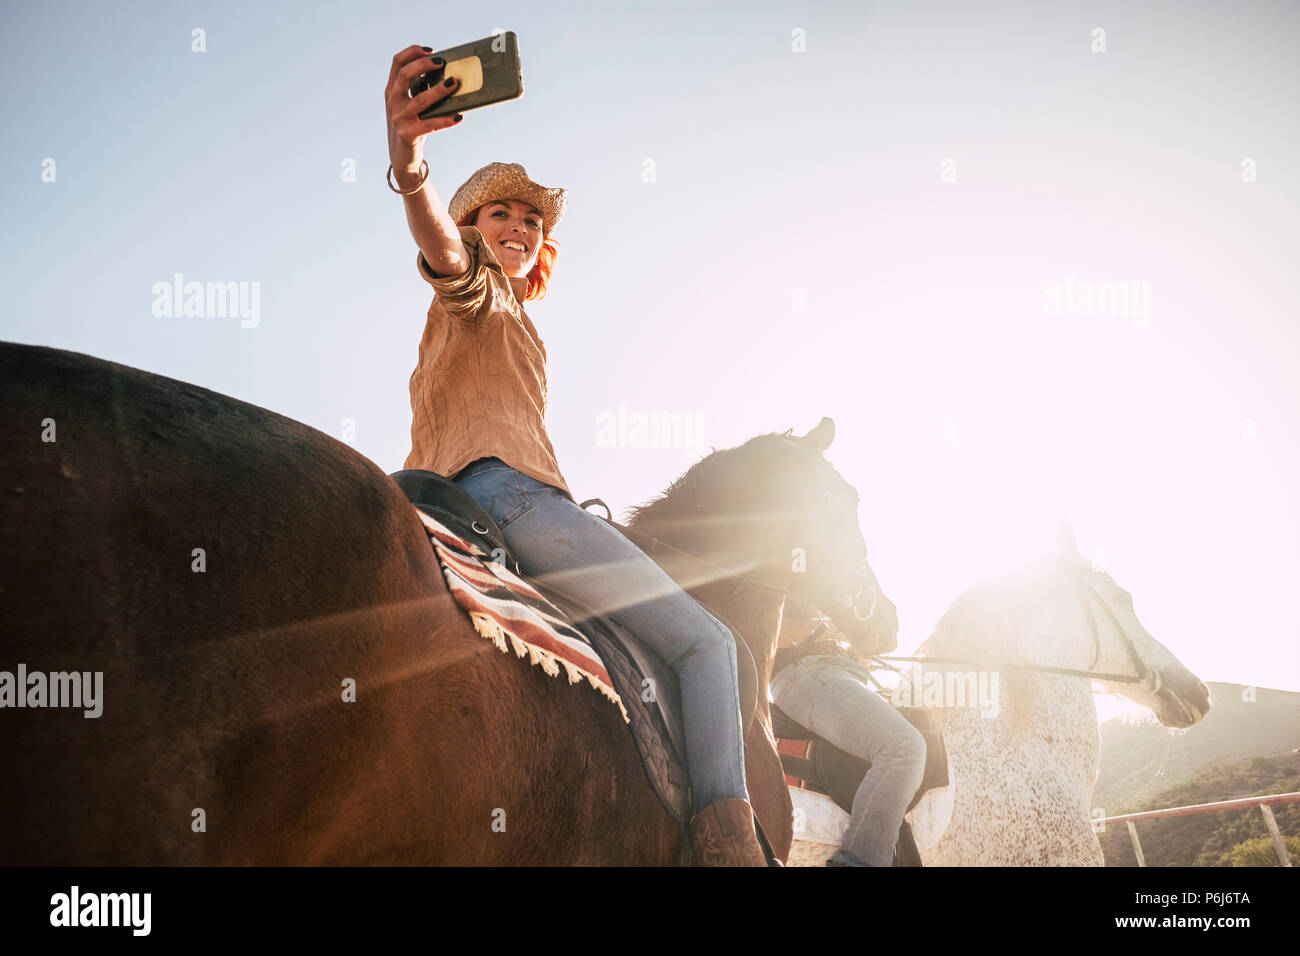 couple riding horses take a selfie with modern technology smartphone. cowboy lifestyle and smile woman. sunset time and backlight for outdoor leisure  - Stock Image